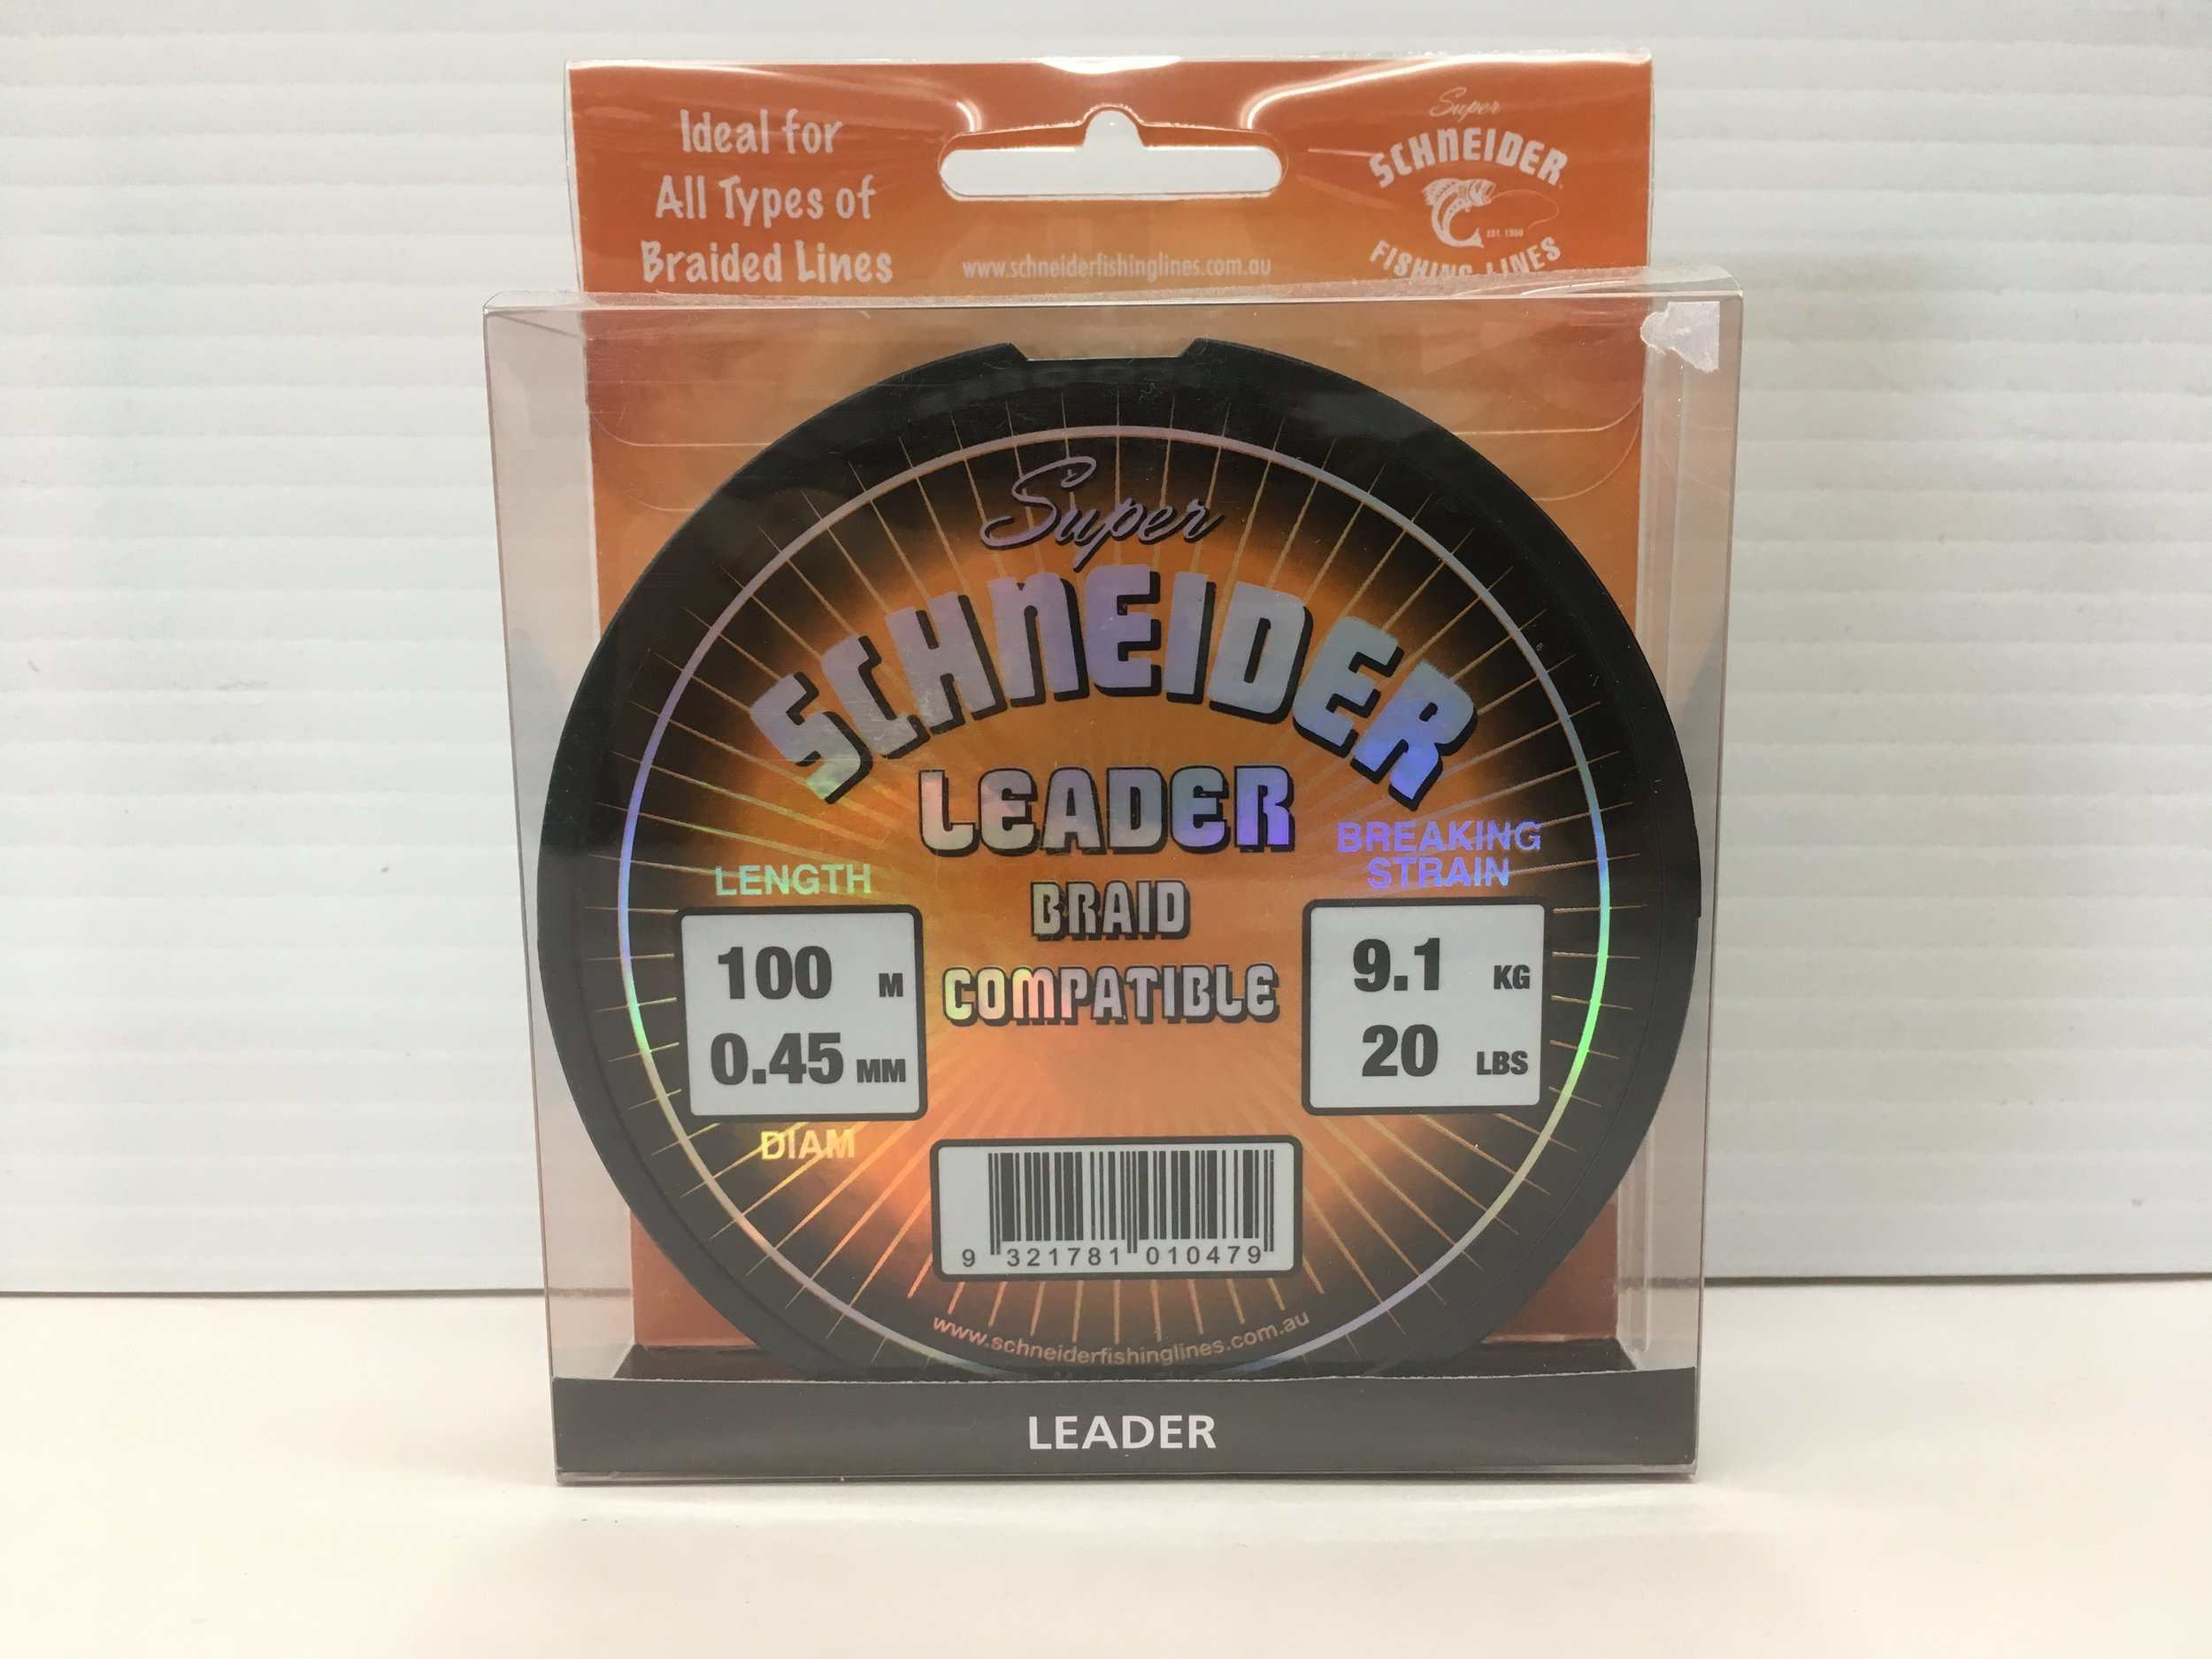 Super Schneider Leader